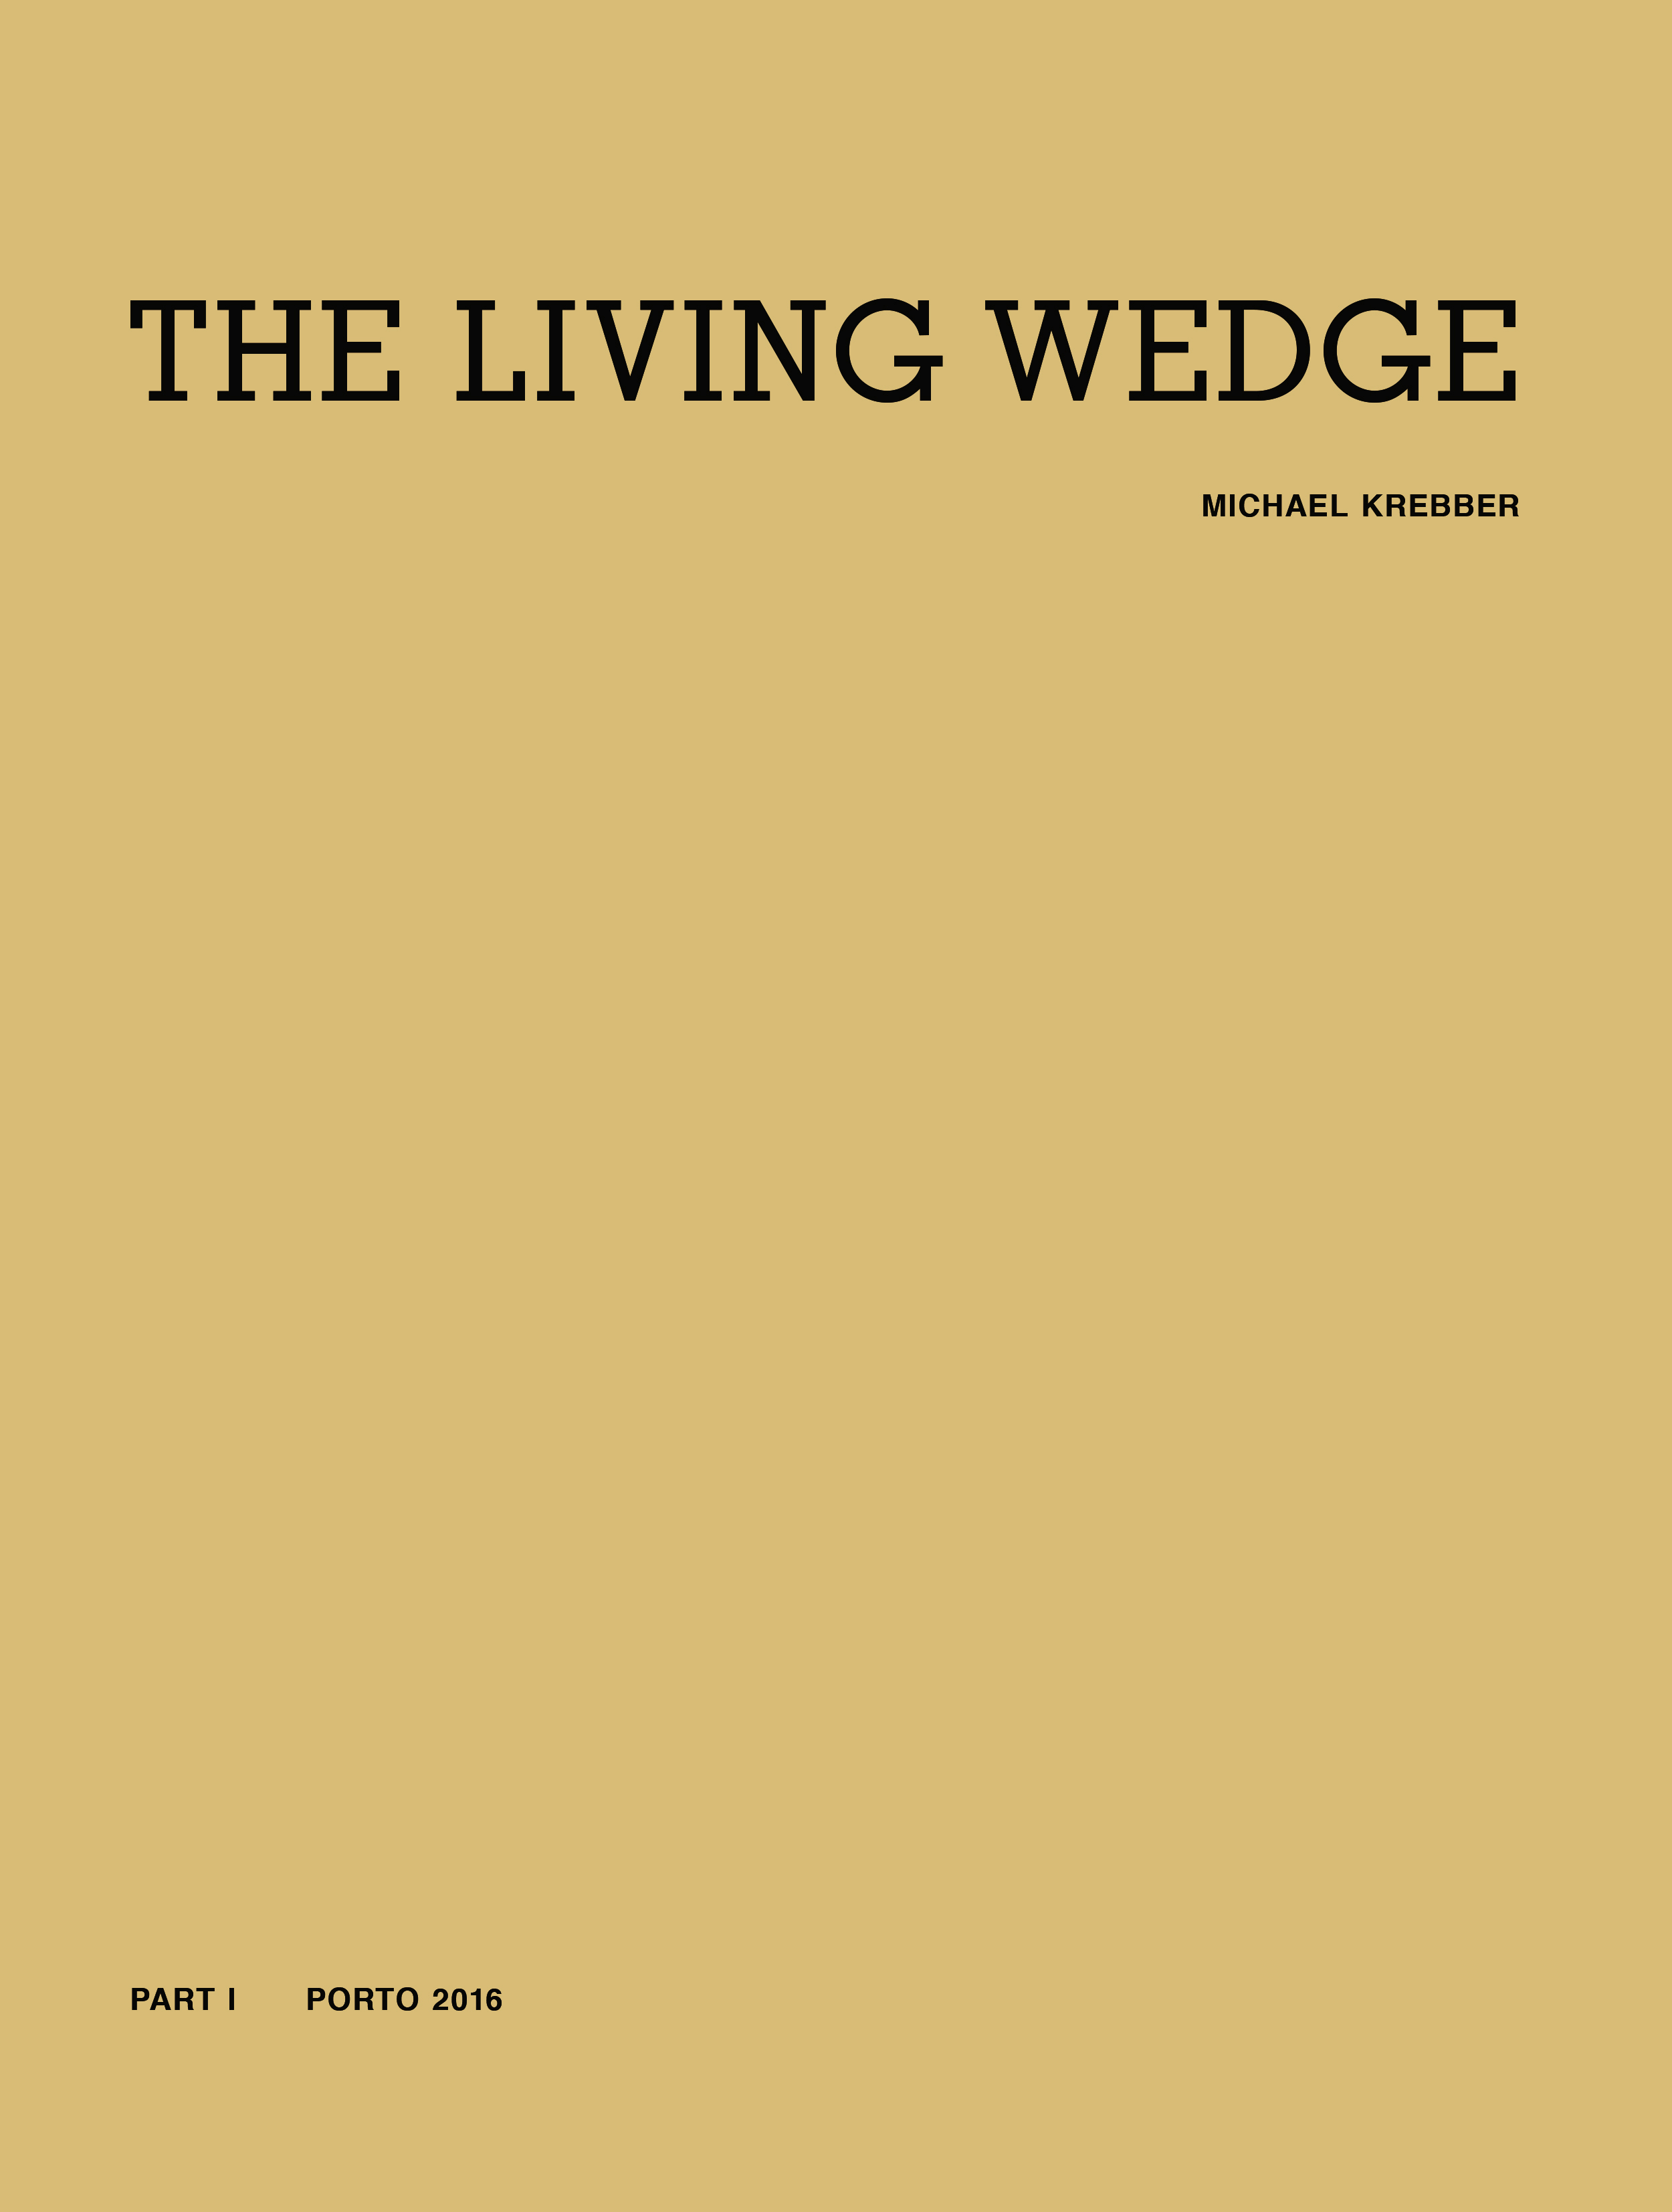 "Michael Krebber – ""The Living Wedge. Part II"" 2017, 160 pages, with 47 color plates, Owrps, 28 x 21,5 cm Euro 24.80,- – This two part publication documents the survey exhibition of Michael Krebber under the same title that took place at the Museo de Serralves, Porto and the Kunsthalle Bern in 2016/2017. Part II contains new essays by Valérie Knoll, Hans-Christian Dany, João Ribas and Manfred Hermes as well as the works list for the works depicted in Part I. Additionally Part II features color plates of the drawing series ""Flat Finish 1-47""."